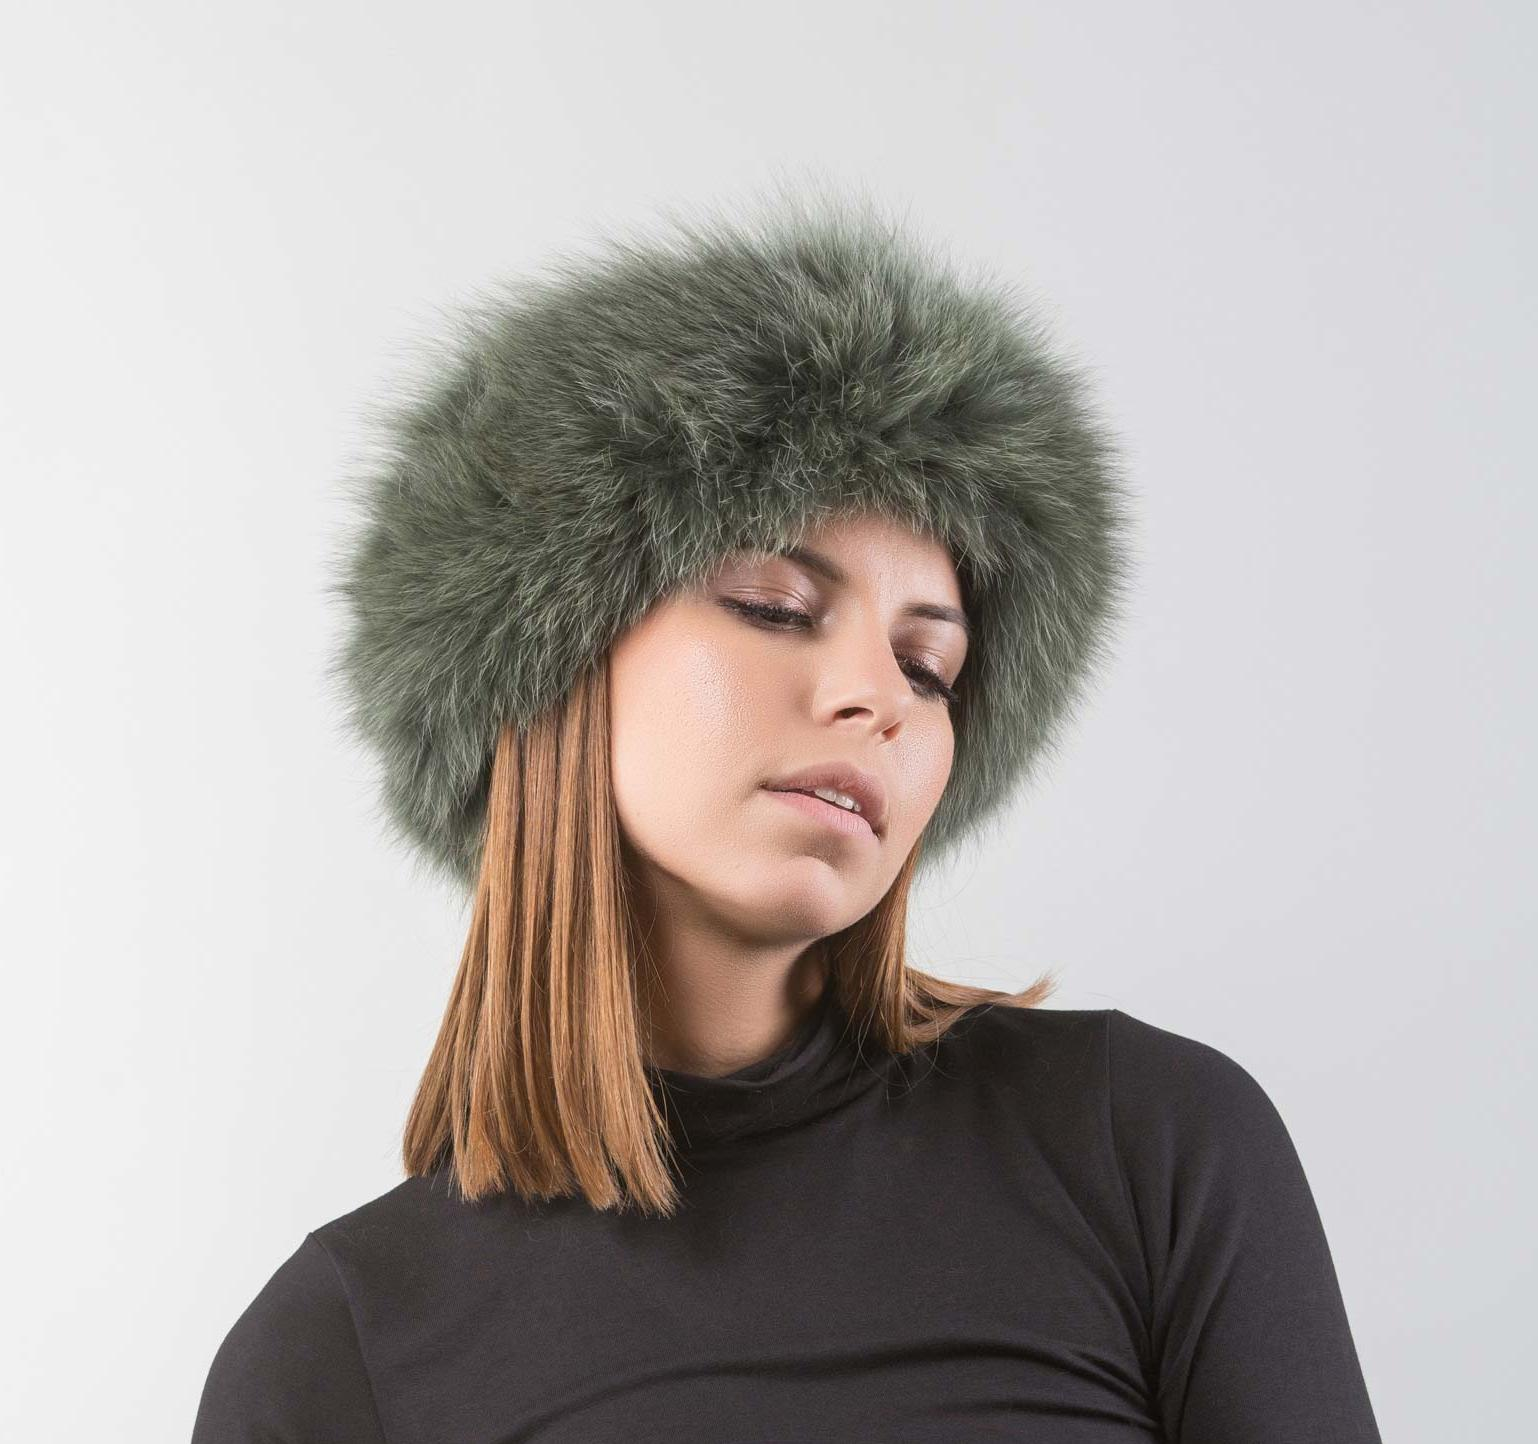 Green Fox Fur Headband. 100% Real Fur and Accessories- Haute Acorn 35080730815